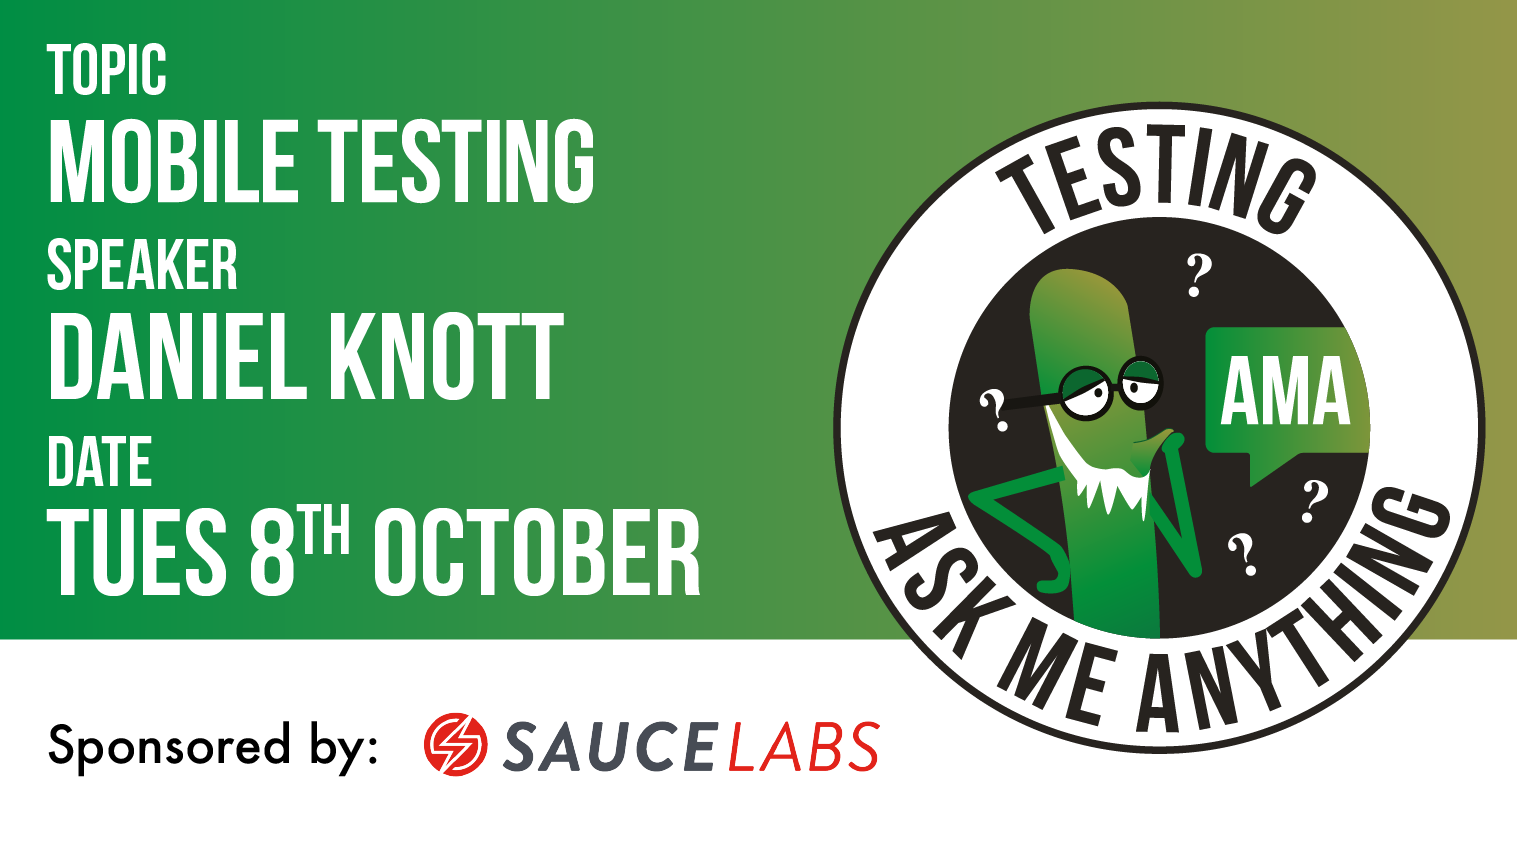 Testing Ask Me Anything - Mobile Testing - Daniel Knott, starts: 2019-10-08